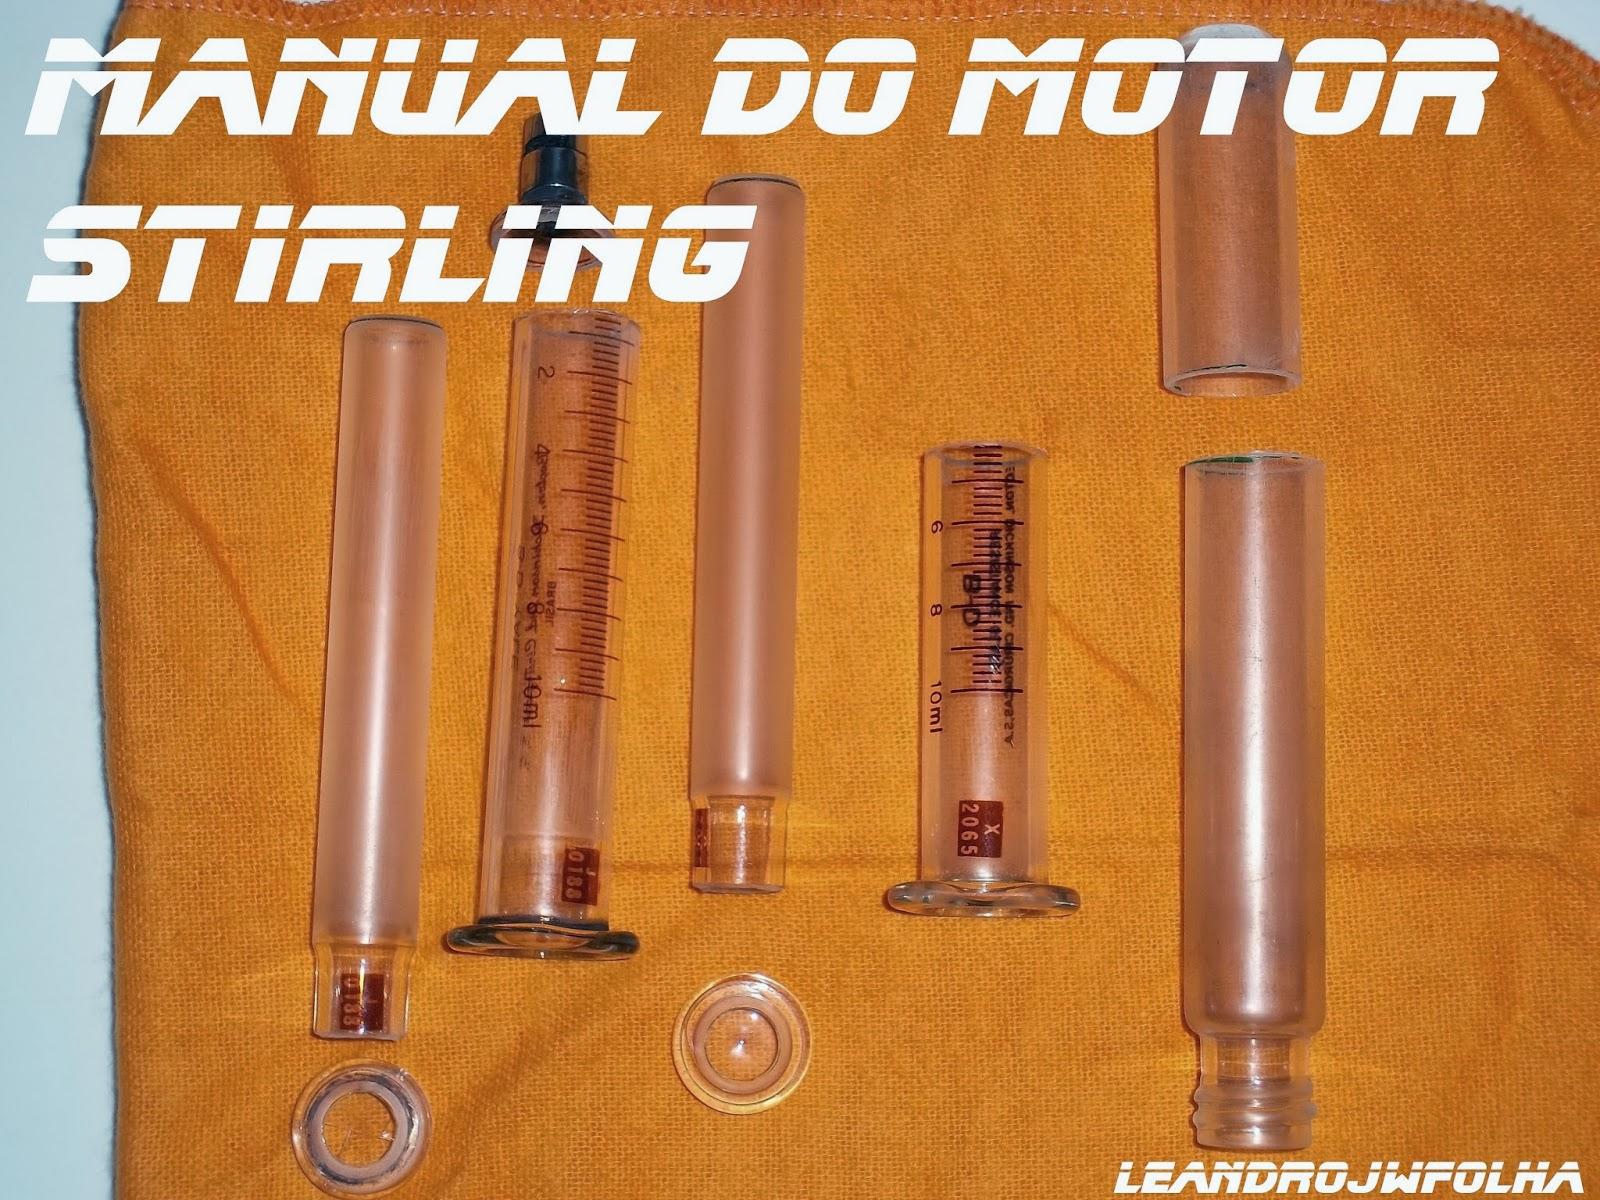 Manual do motor Stirling, seringas de vidro de 10 ml